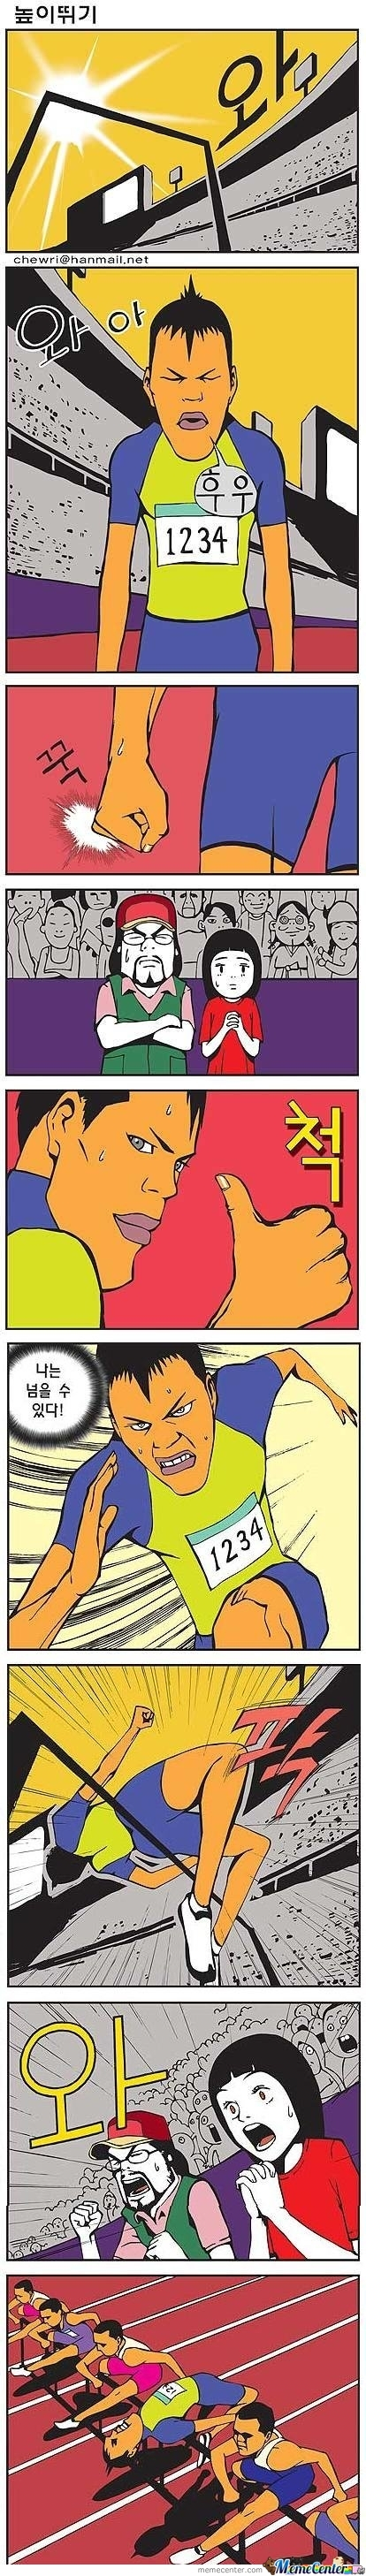 Korean Comic #13